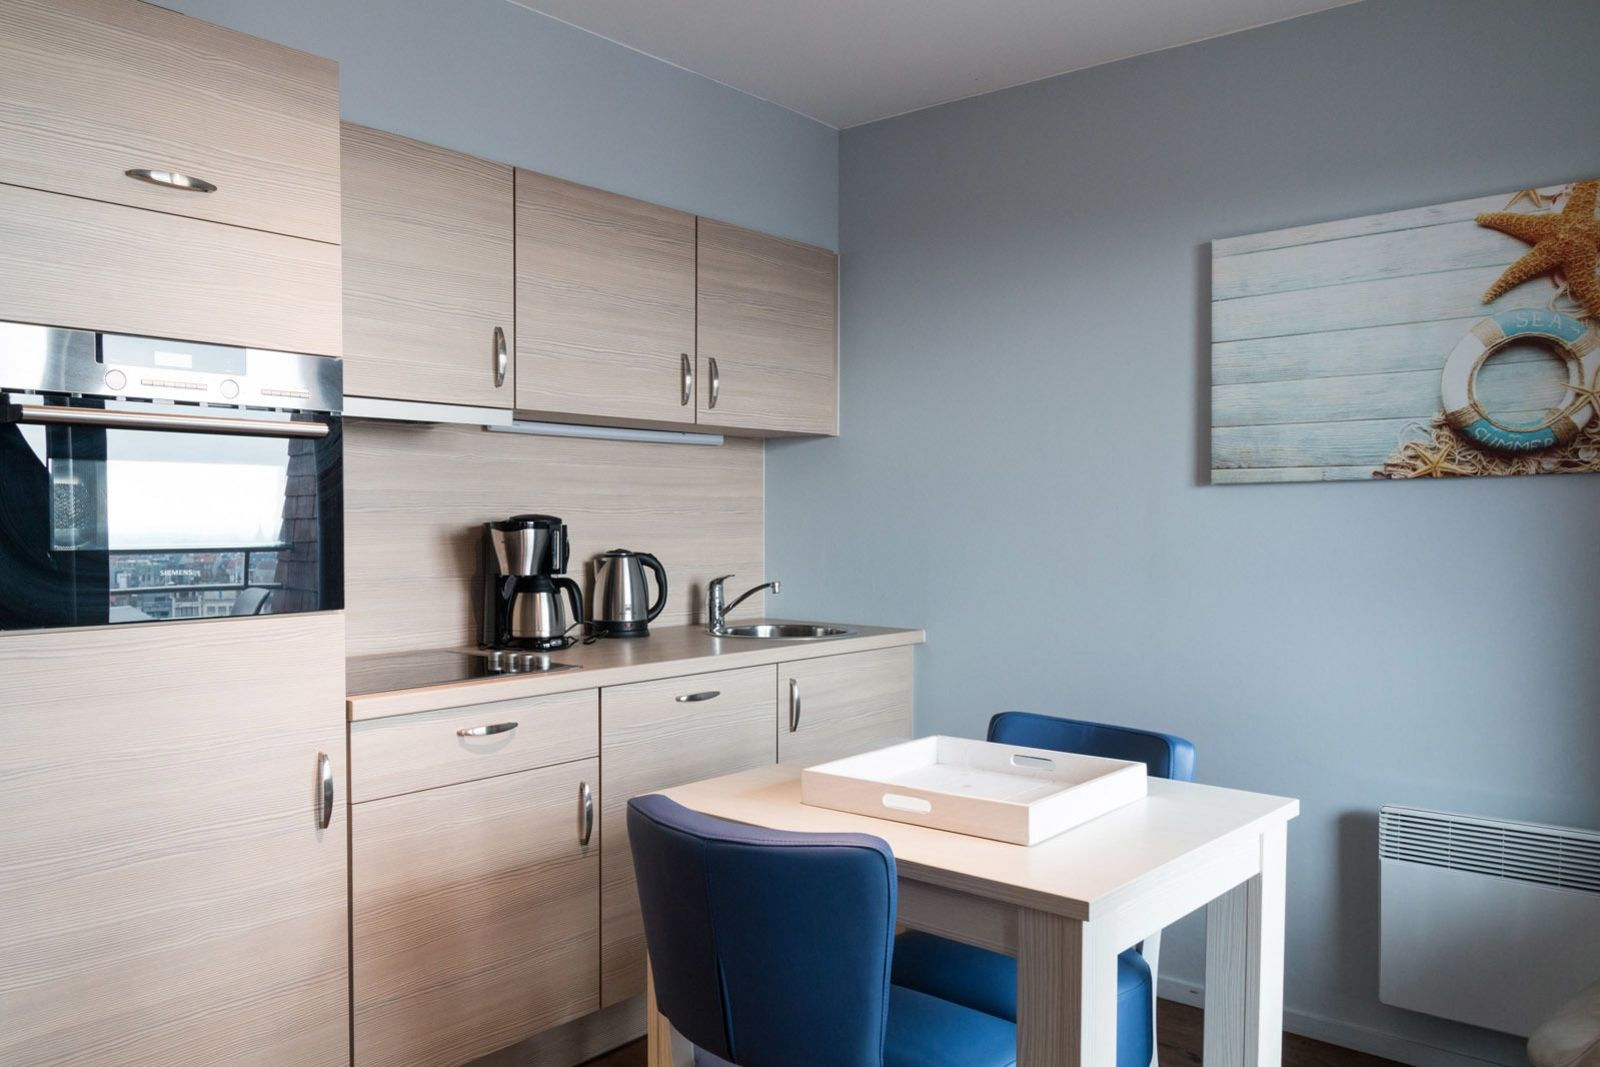 New Holiday Suite for 2 people at sunside